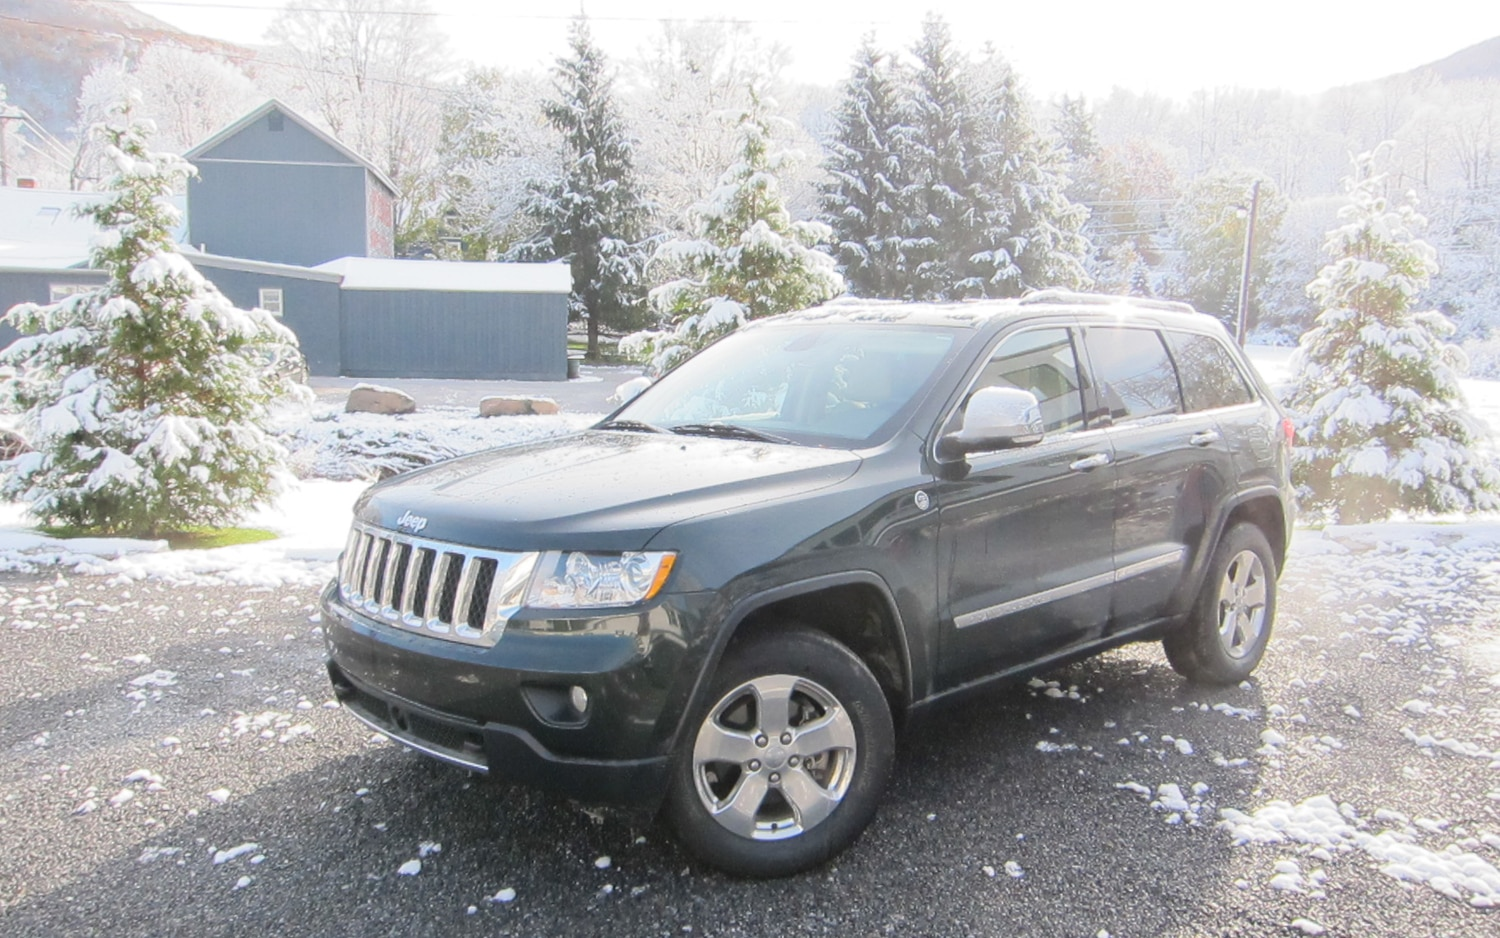 2011 Jeep Grand Cherokee Overland 4x4 Front Left Side View1